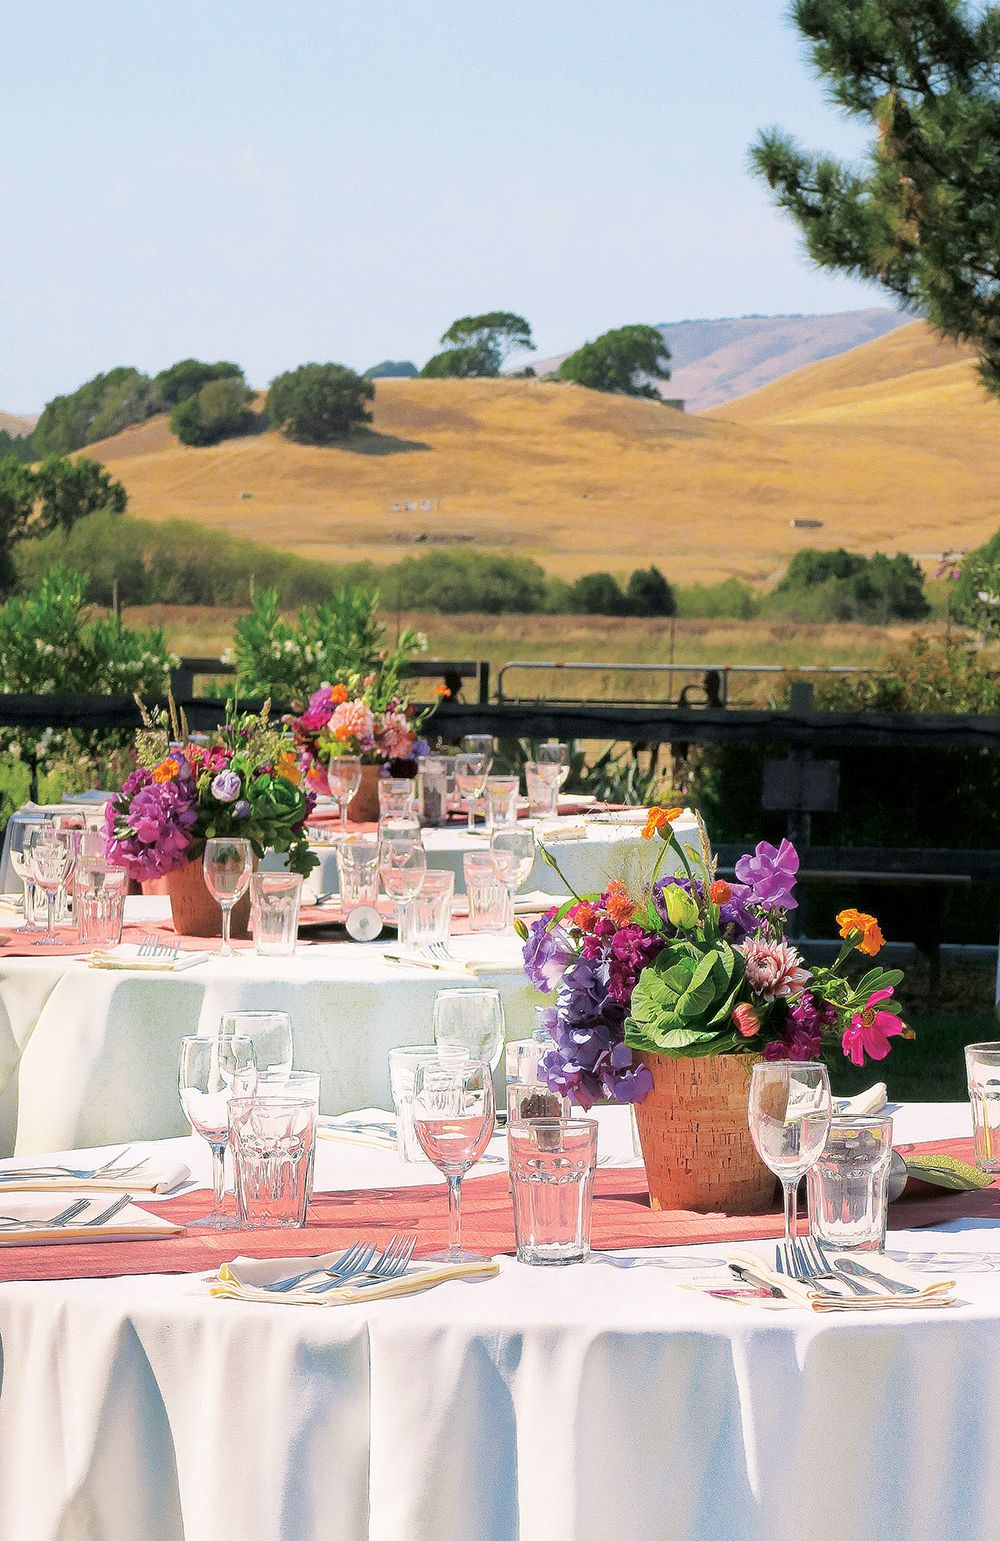 Wedding with a view! | Event venues, Bay area wedding ...